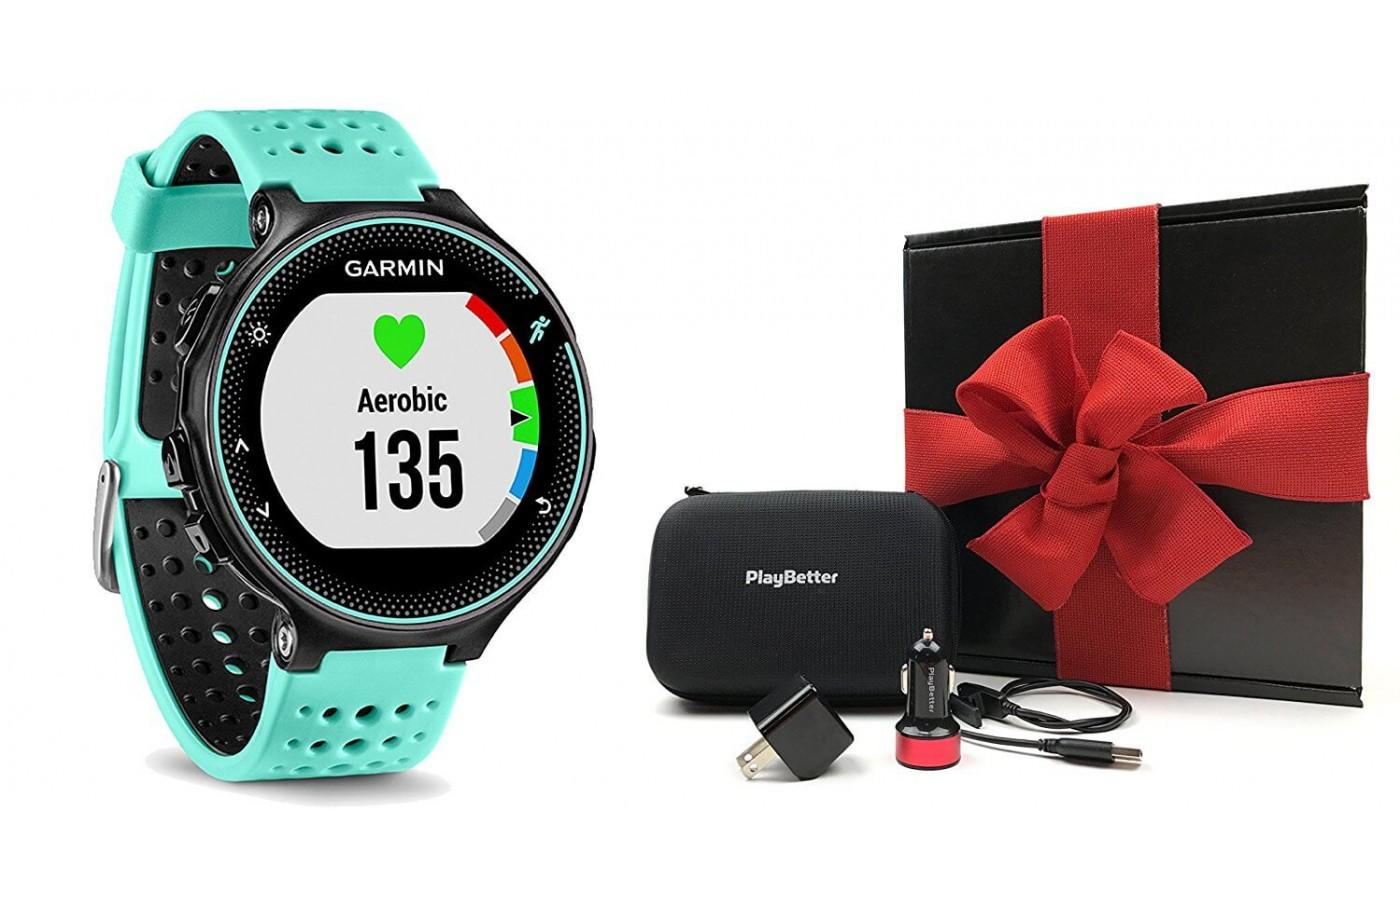 Garmin Forerunner 235 with accessories